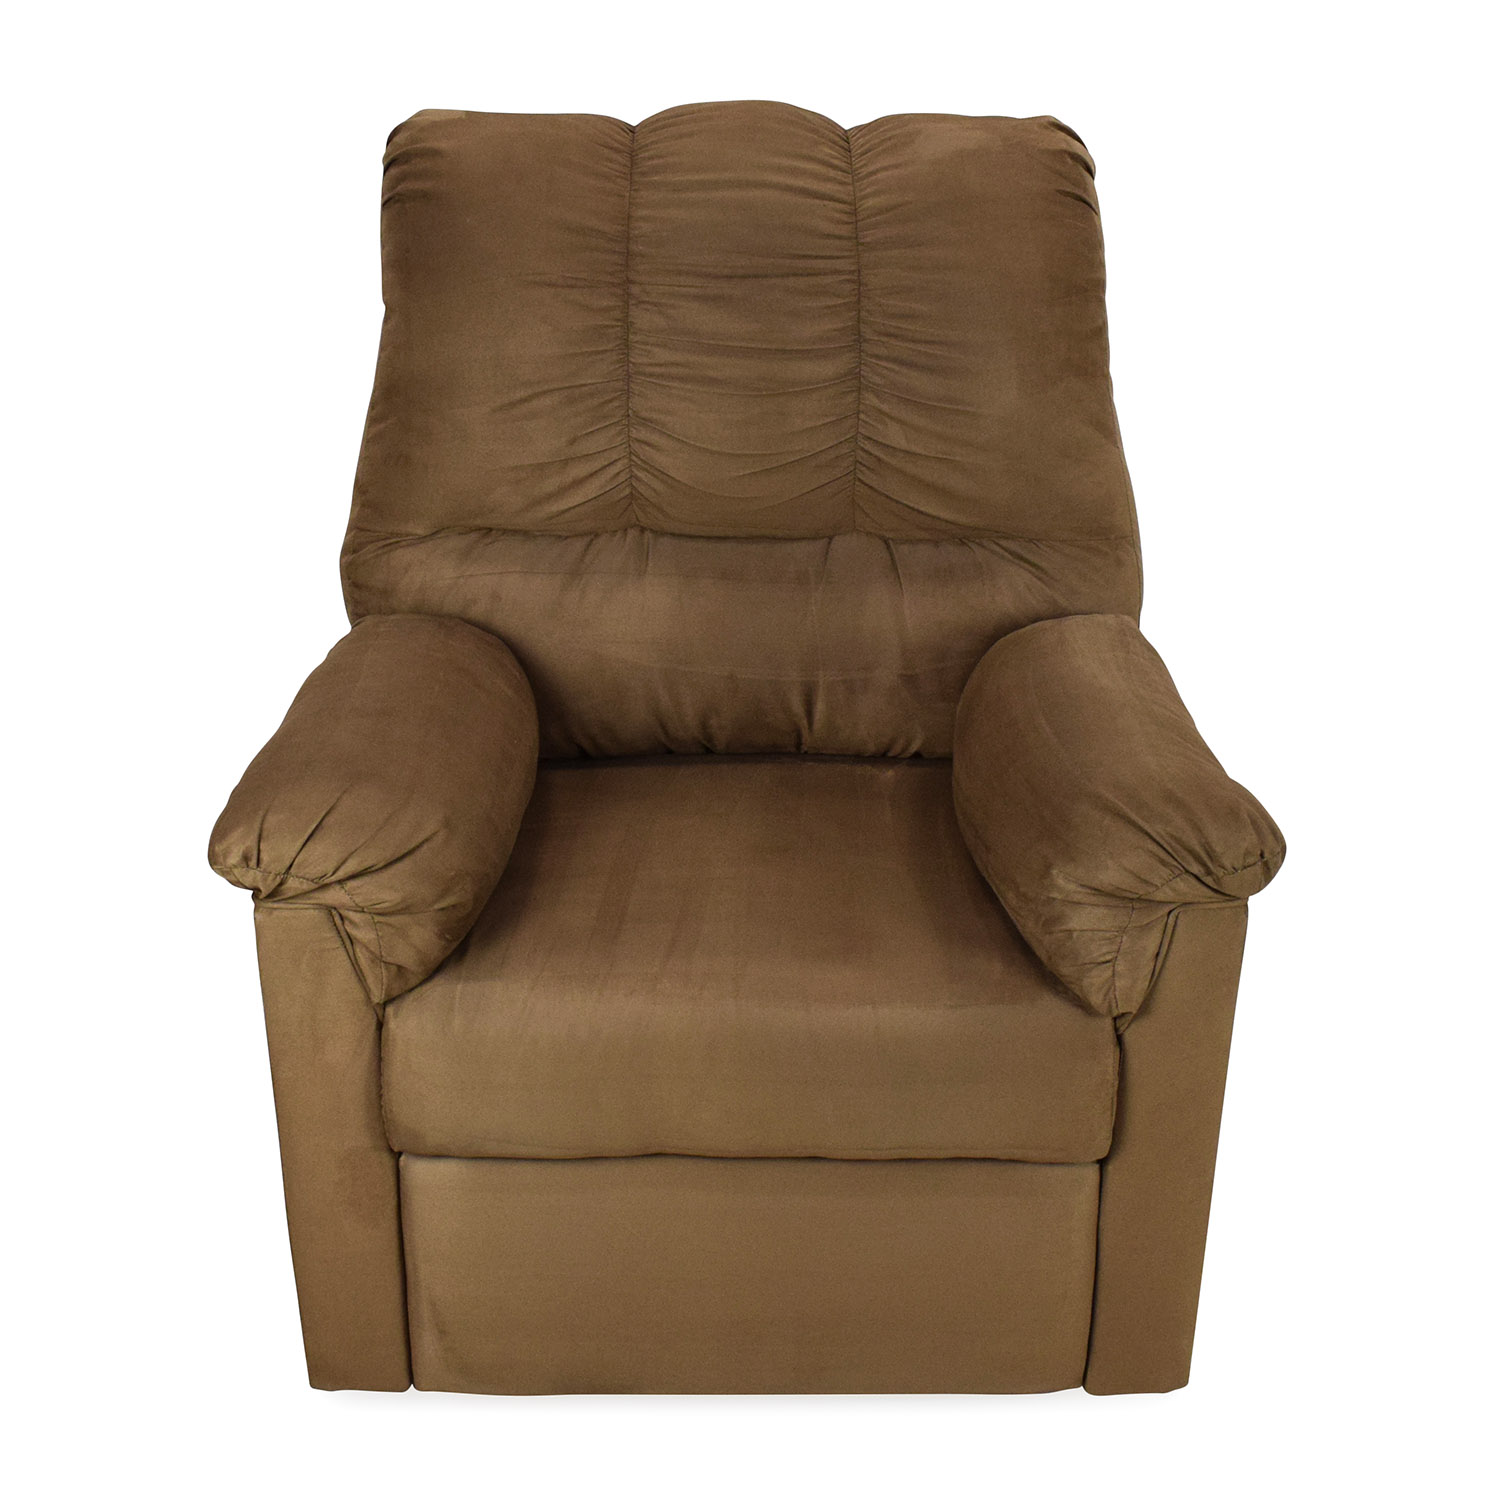 Ashley Furniture Recliners: Recliners: Used Recliners For Sale